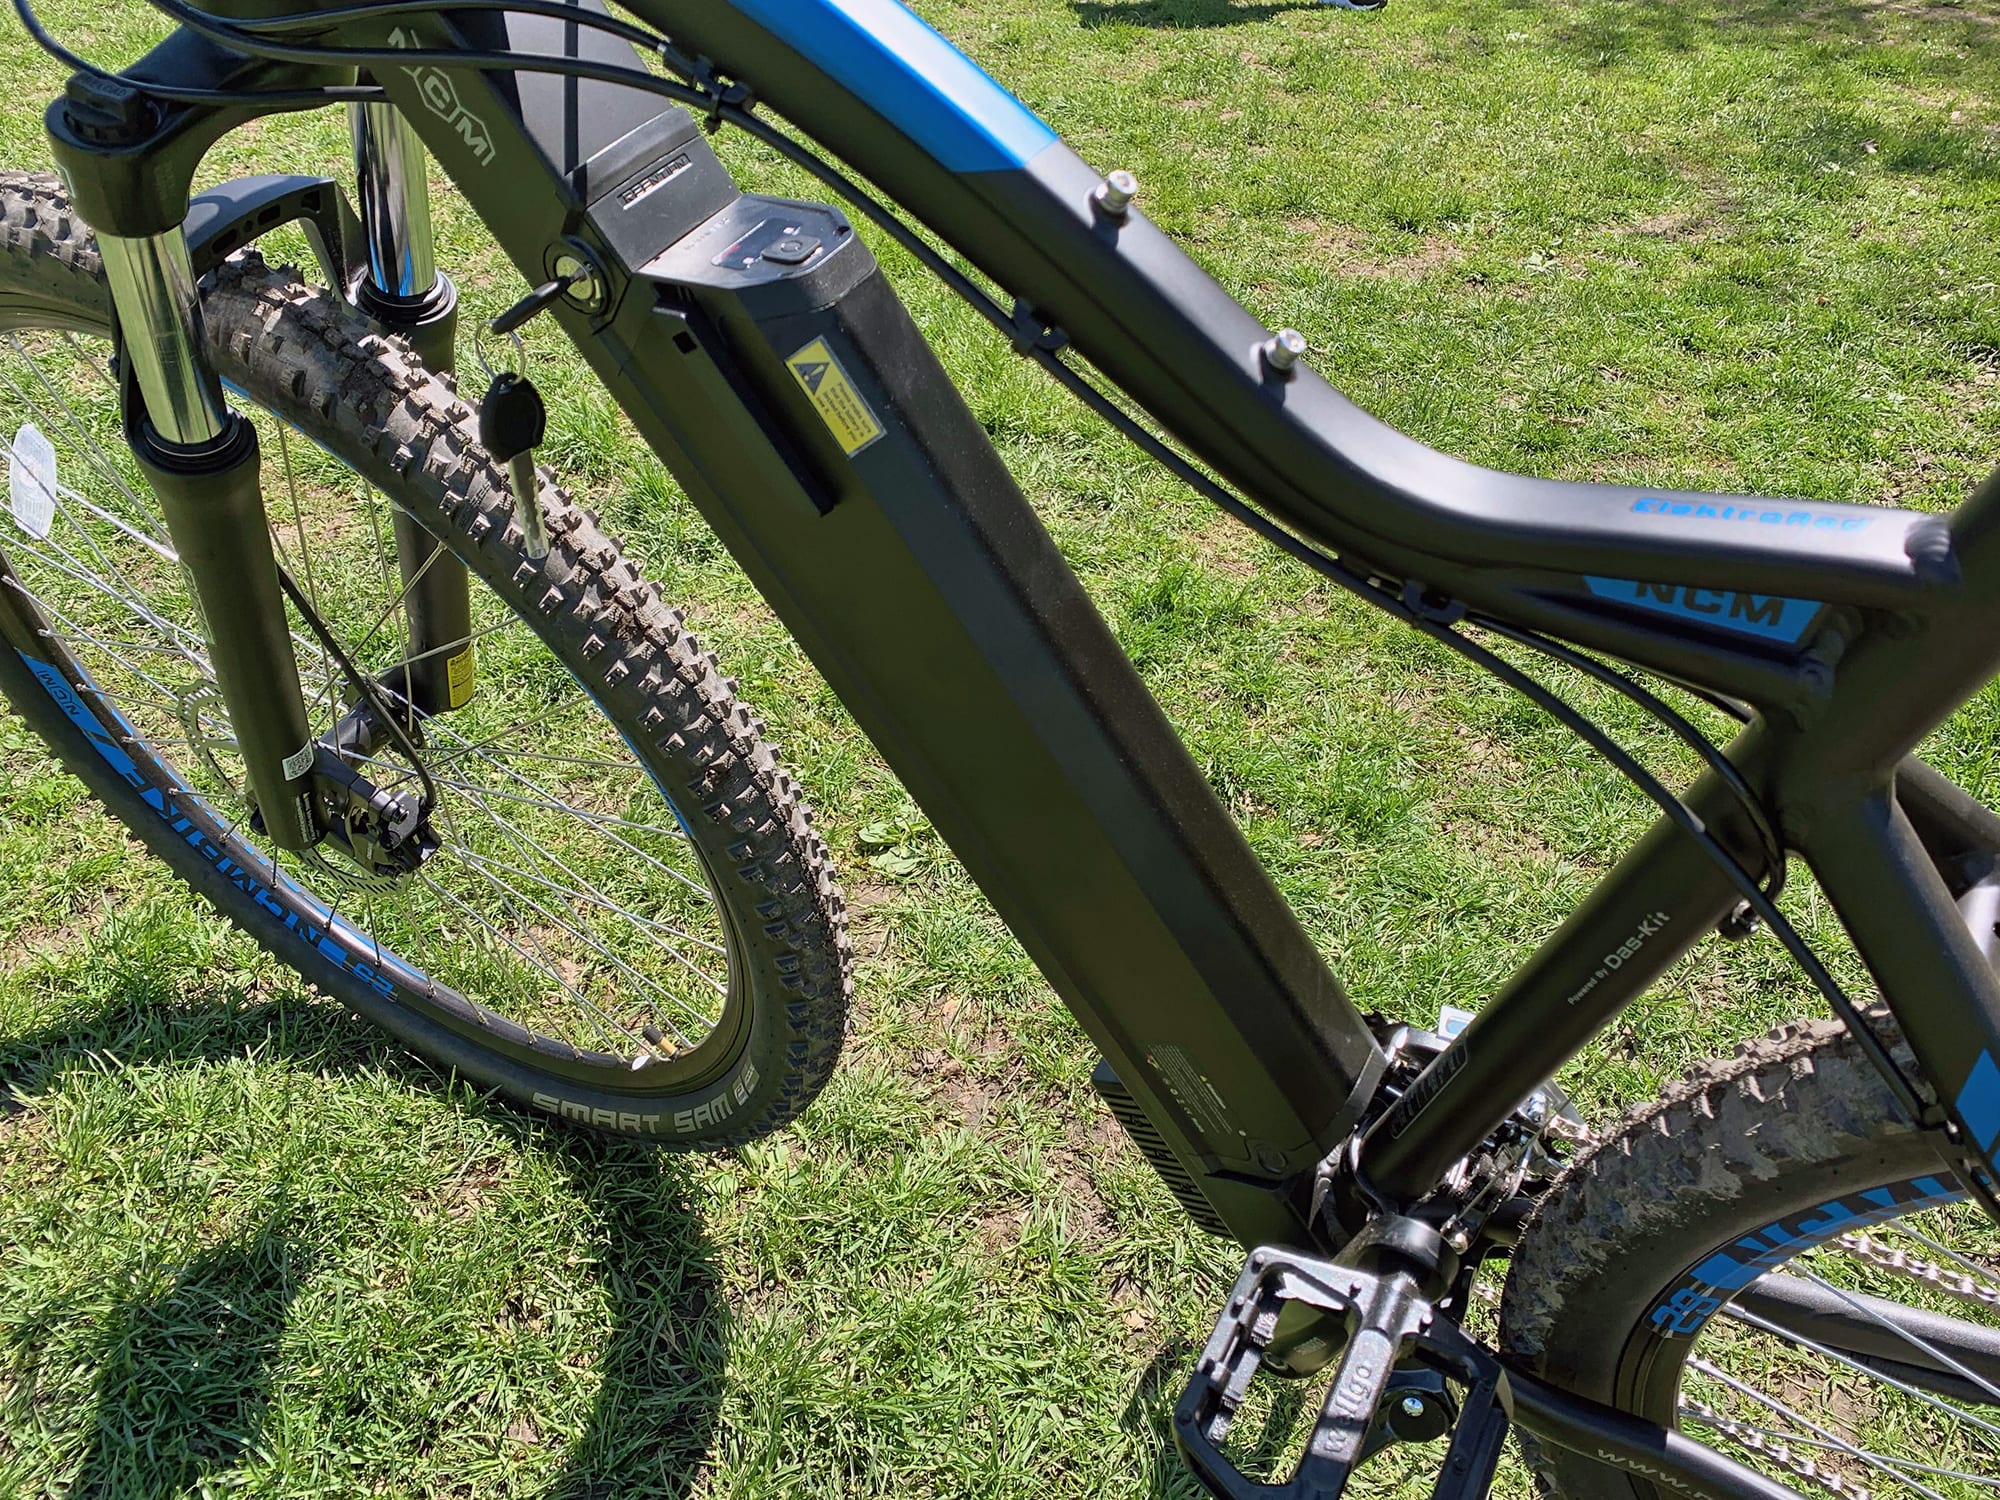 Best Full Suspension Mountain Bike >> NCM Moscow Plus Review - Prices, Specs, Videos, Photos